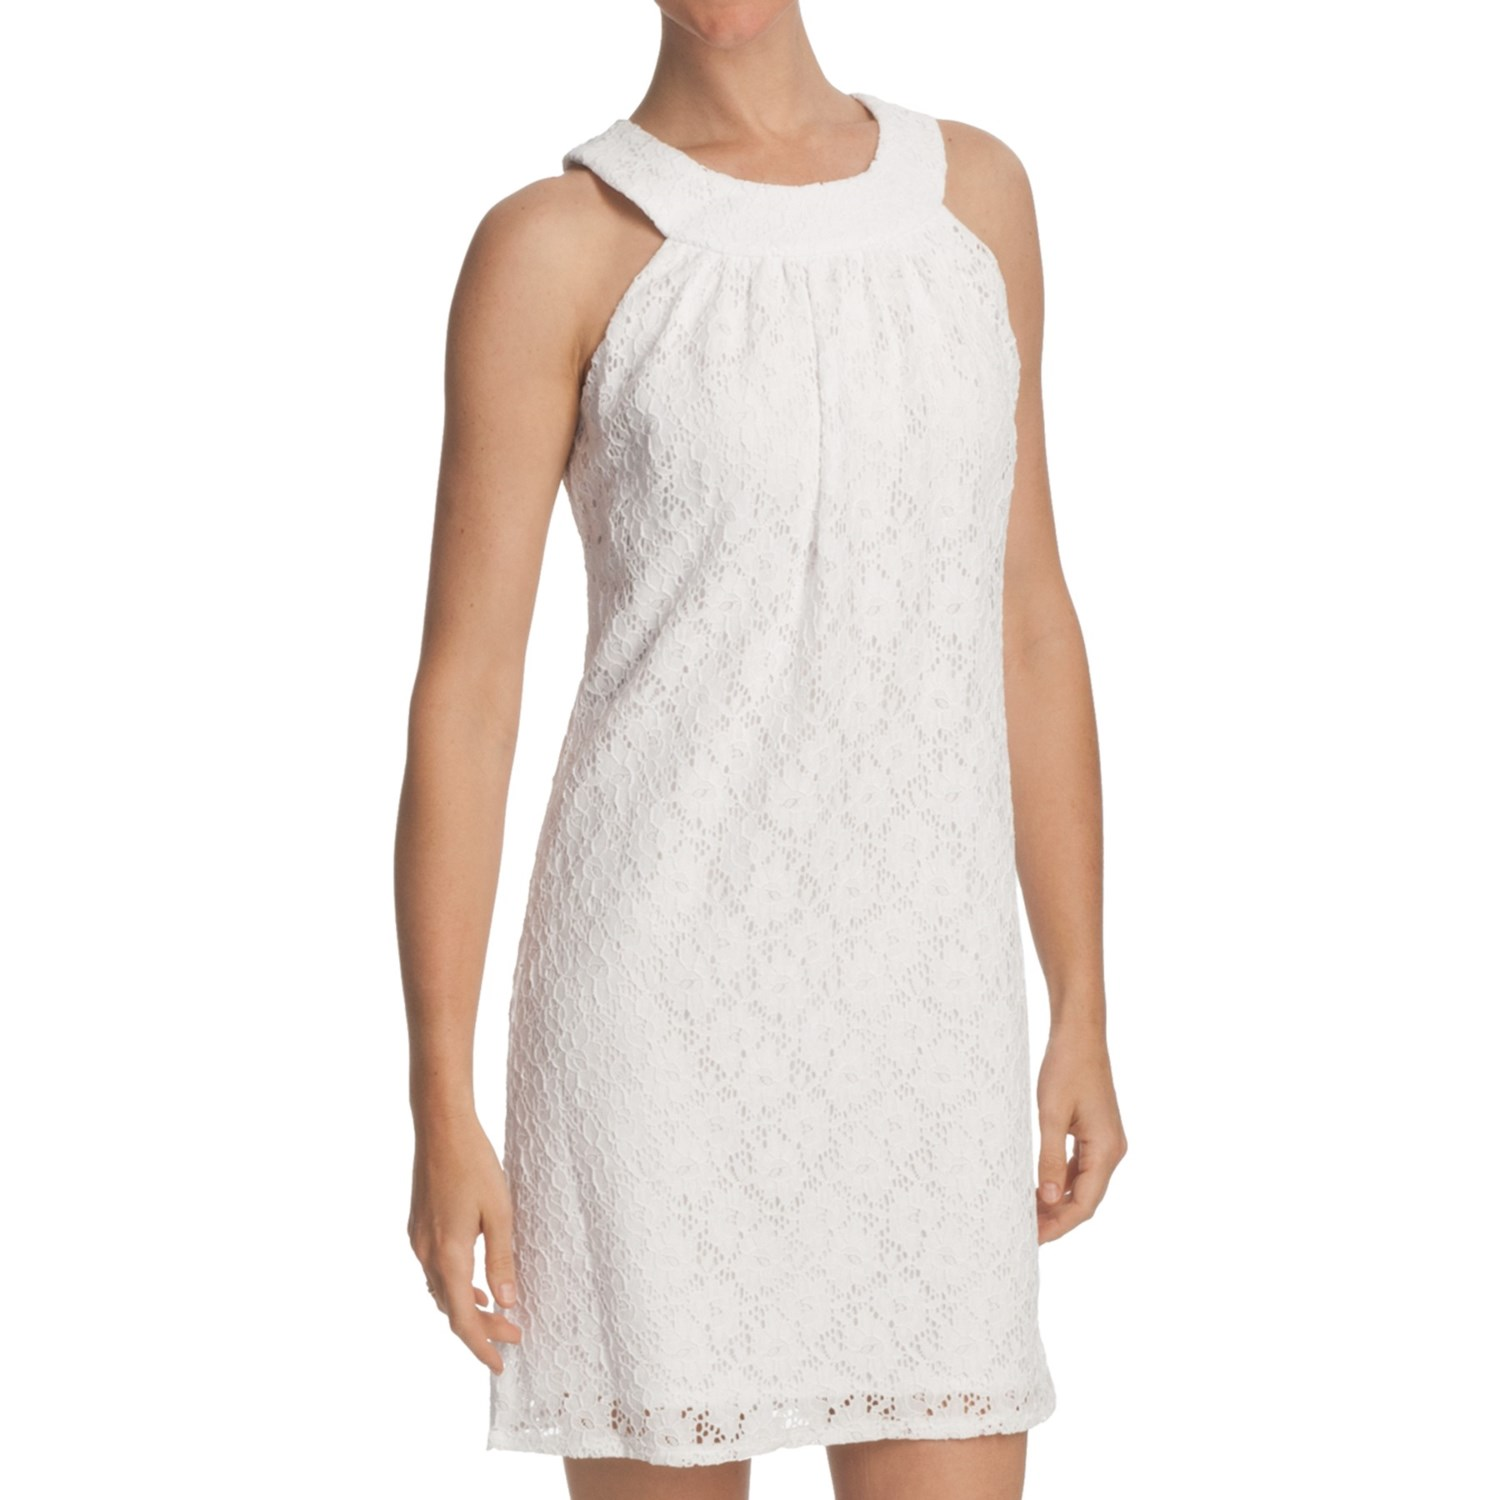 Laundry By Design Passion Flower Lace Dress Sleeveless